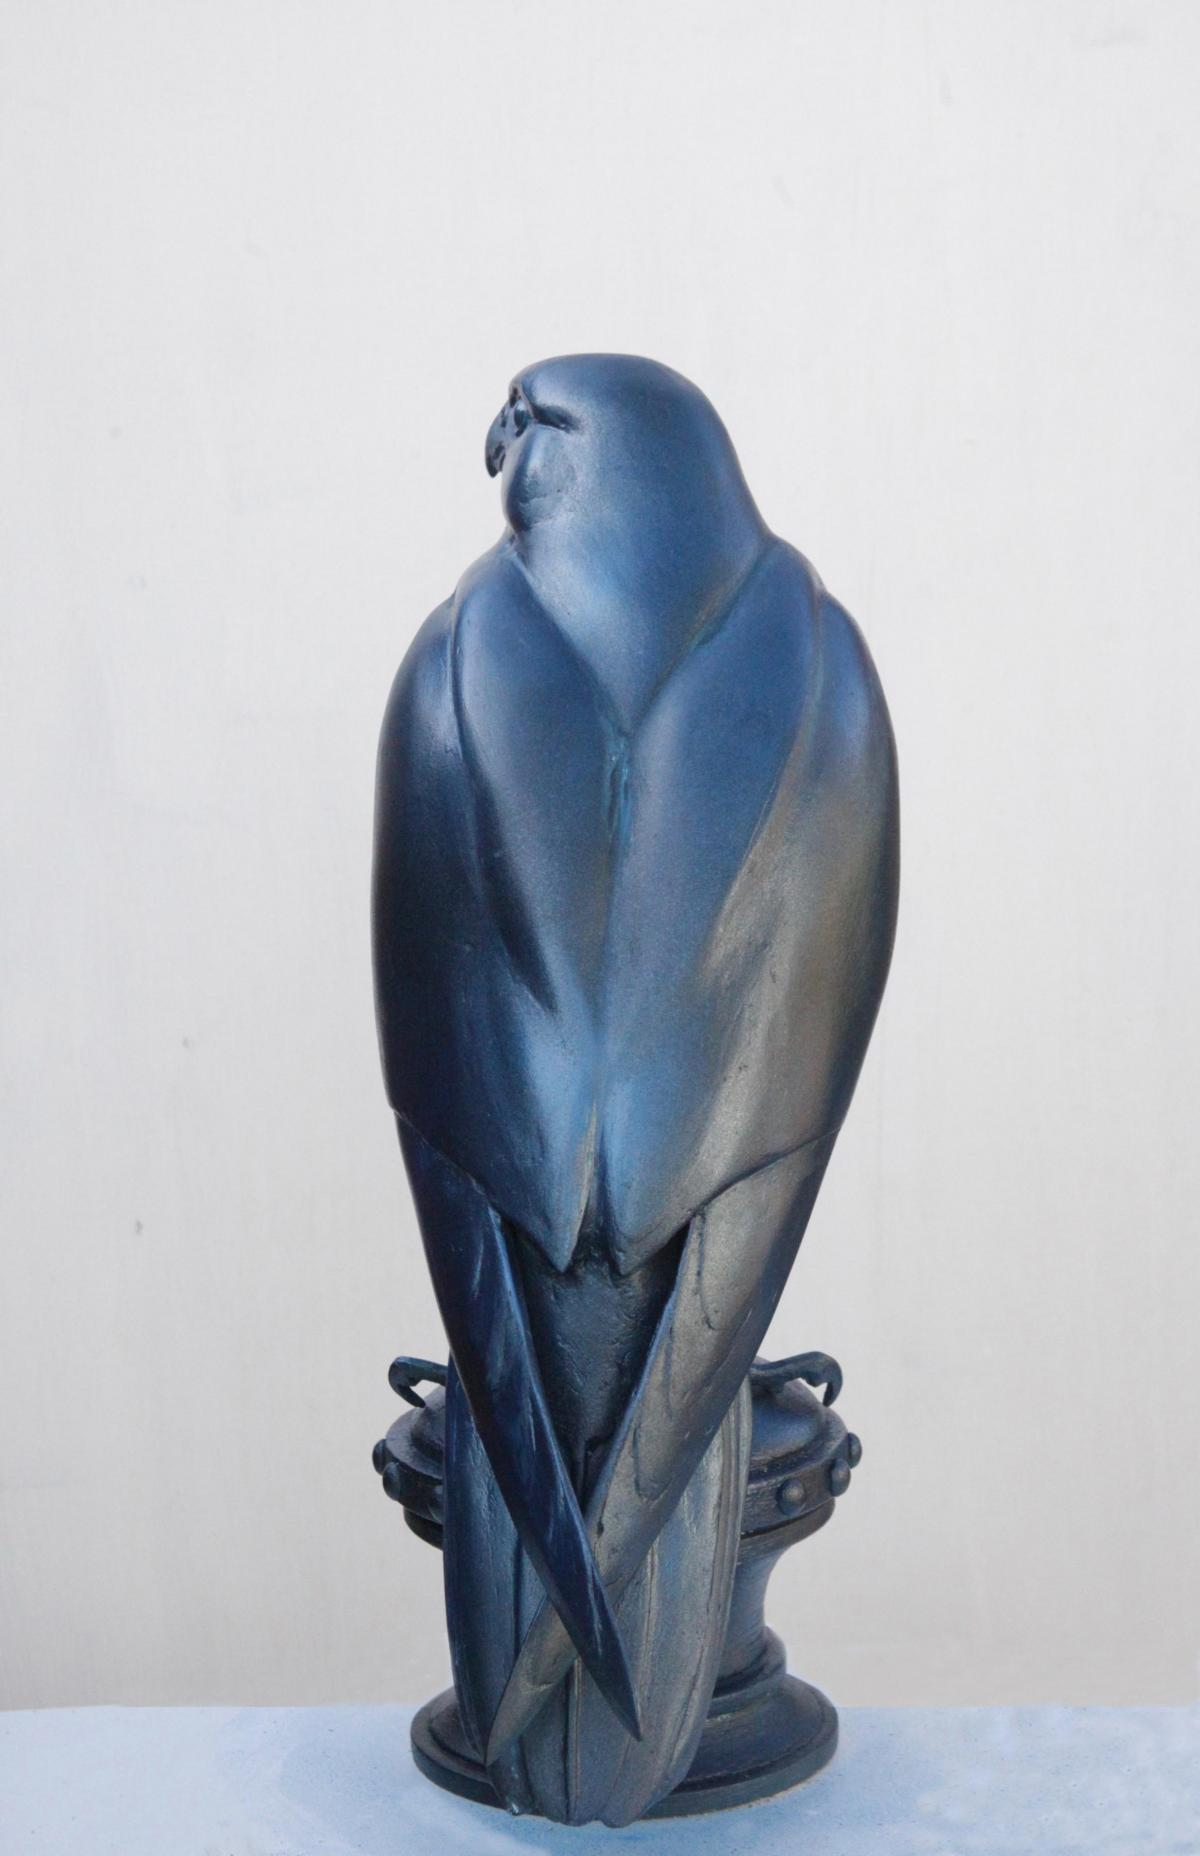 Peregrine Falcon | Sculpture by Martin Hayward-Harris | Artists for Conservation 2020